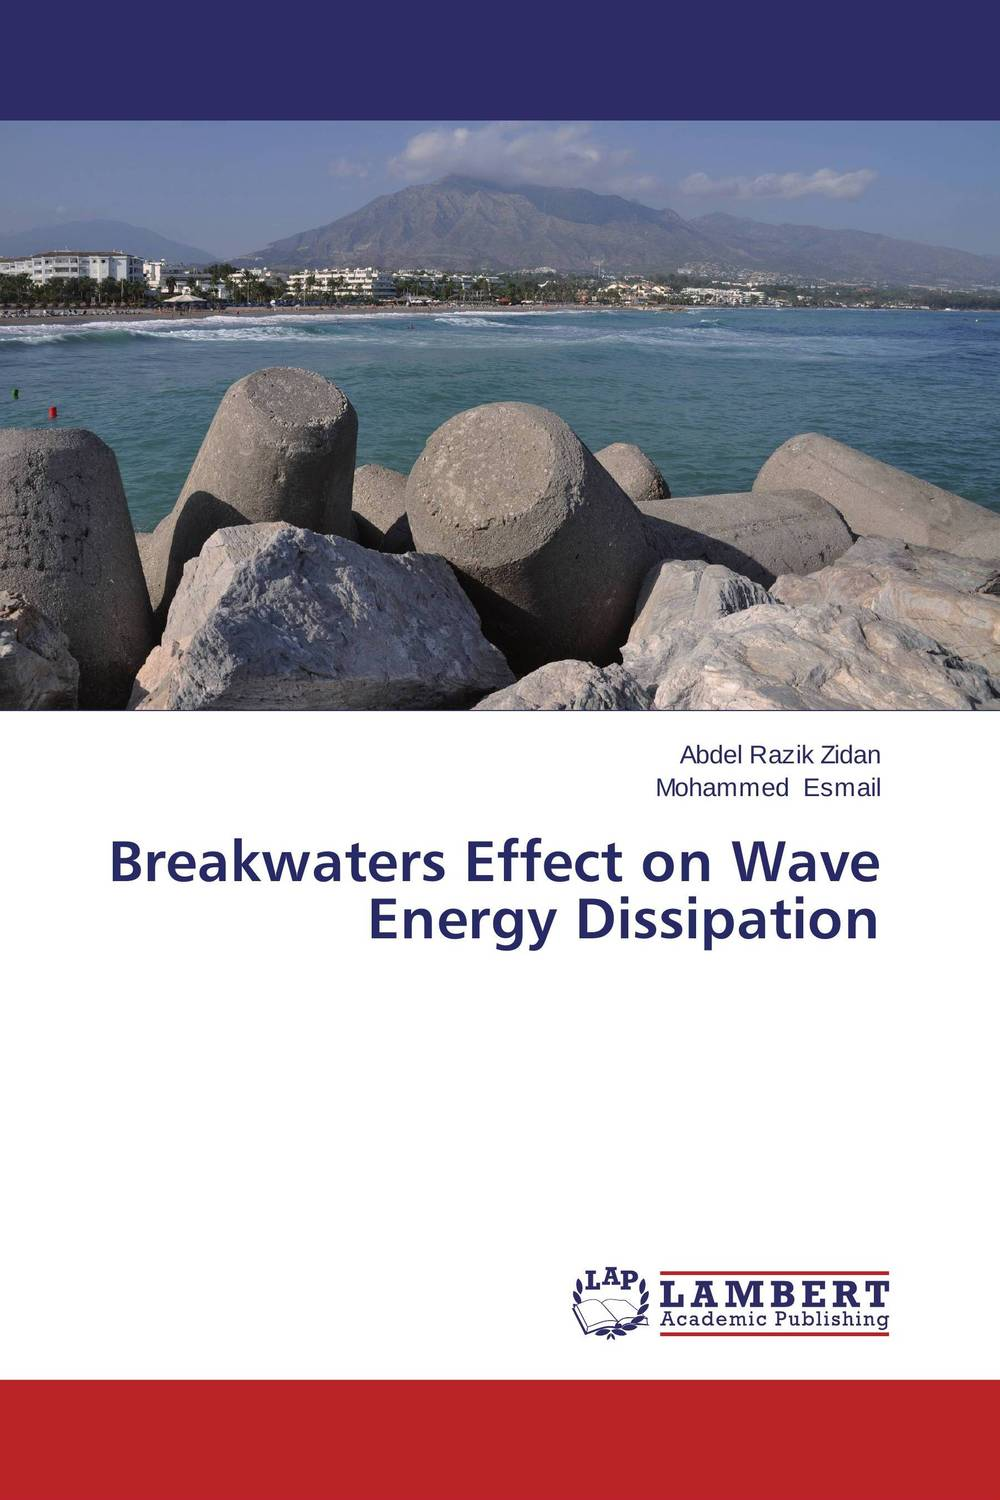 Breakwaters Effect on Wave Energy Dissipation dr david m mburu prof mary w ndungu and prof ahmed hassanali virulence and repellency of fungi on macrotermes and mediating signals